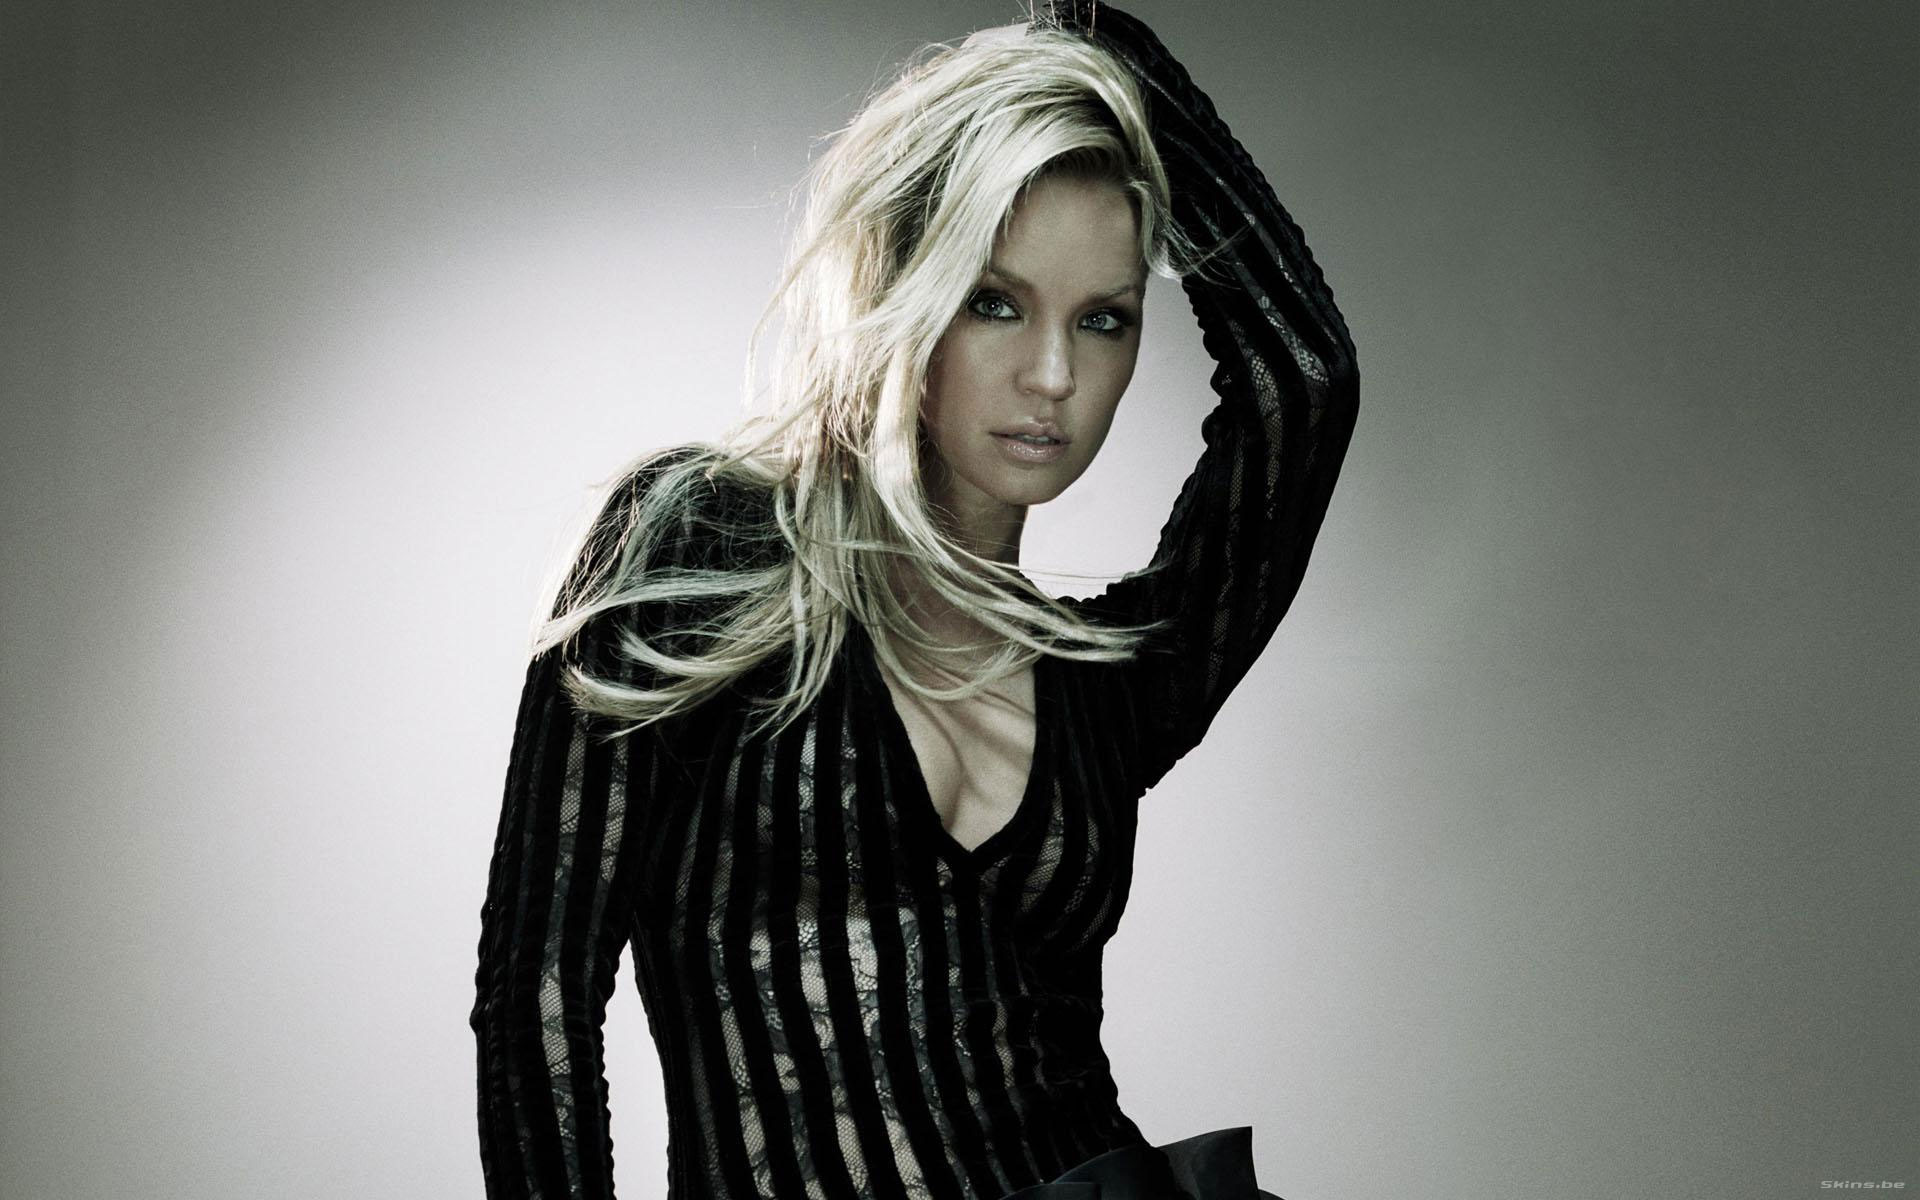 Ashley Scott actress blondes women females girls sexy babes face eyes cleavage